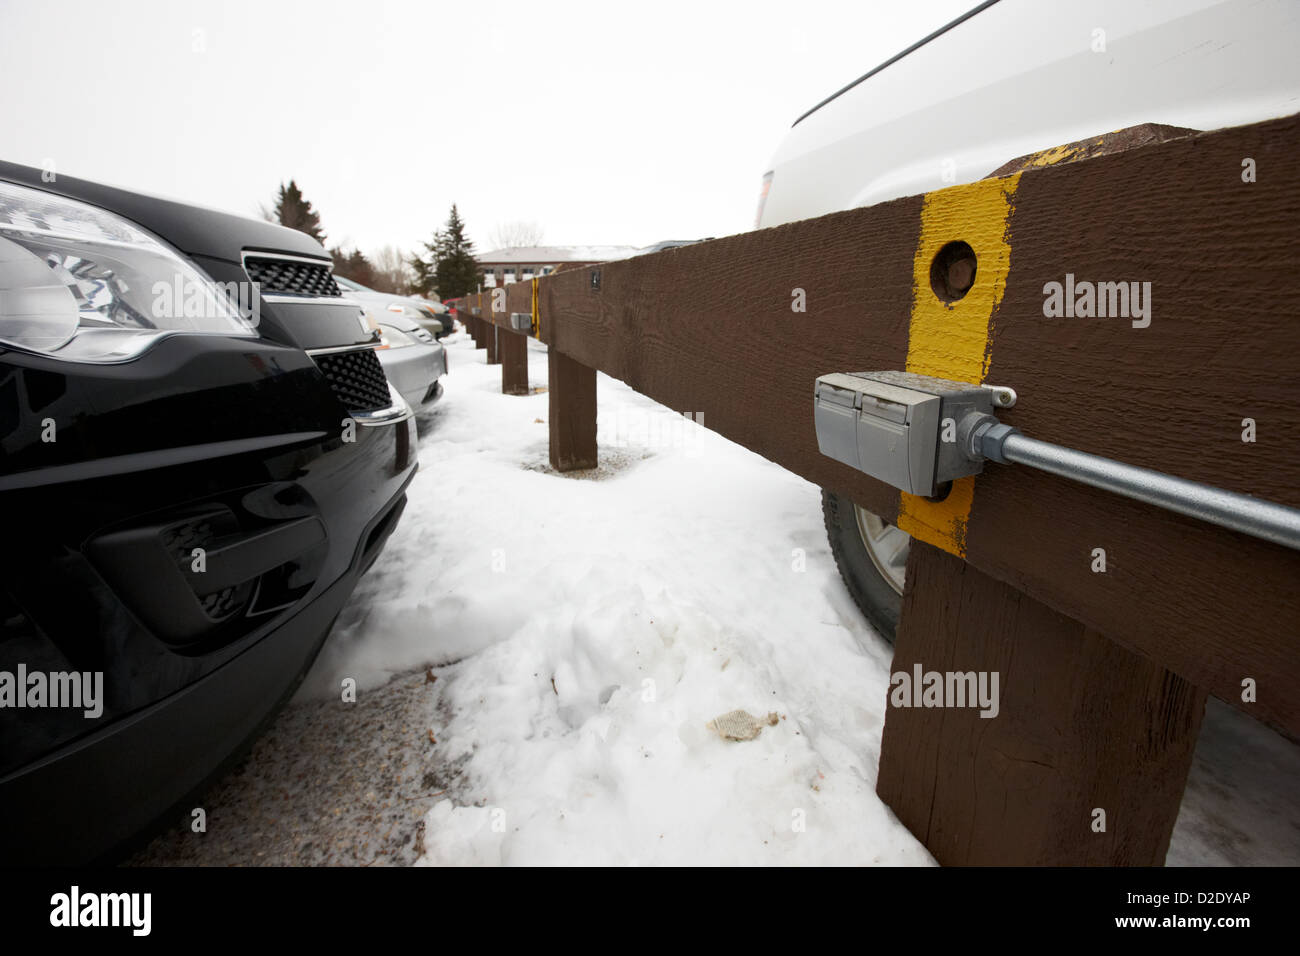 electrical power sockets in outdoor parking lot for engine block heaters saskatchewan canada - Stock Image